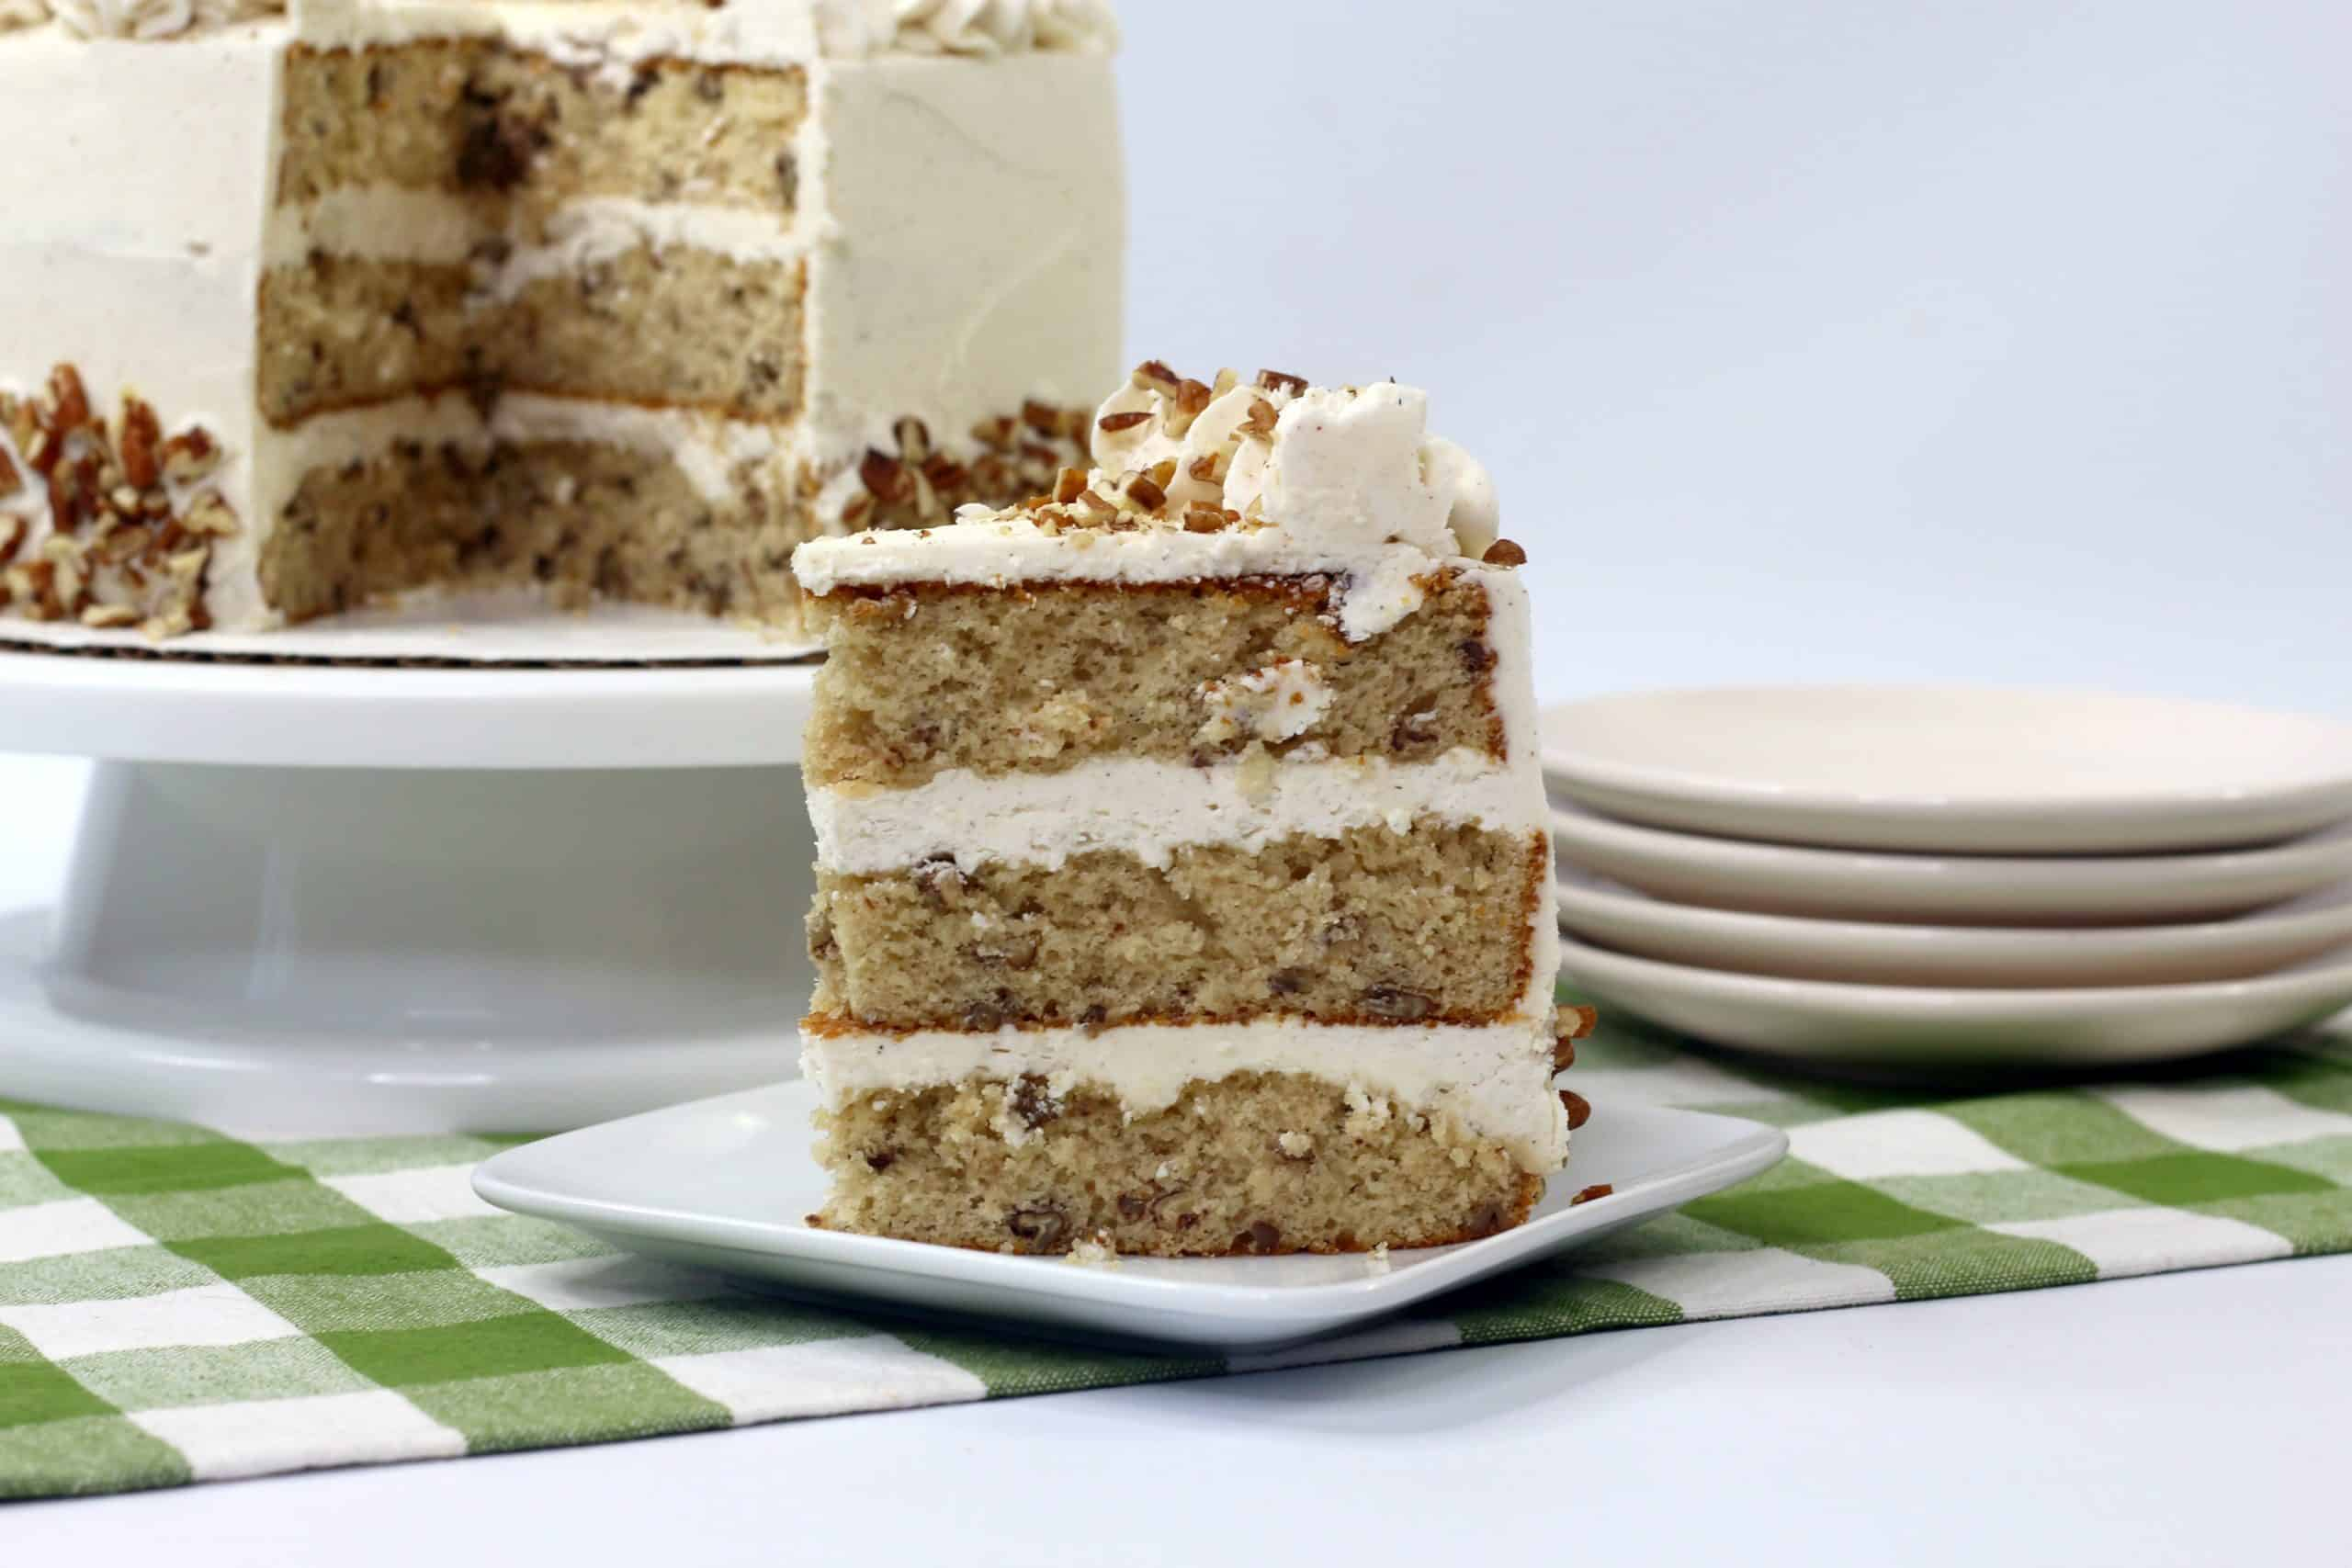 ready to eat piece of butter pecan cake